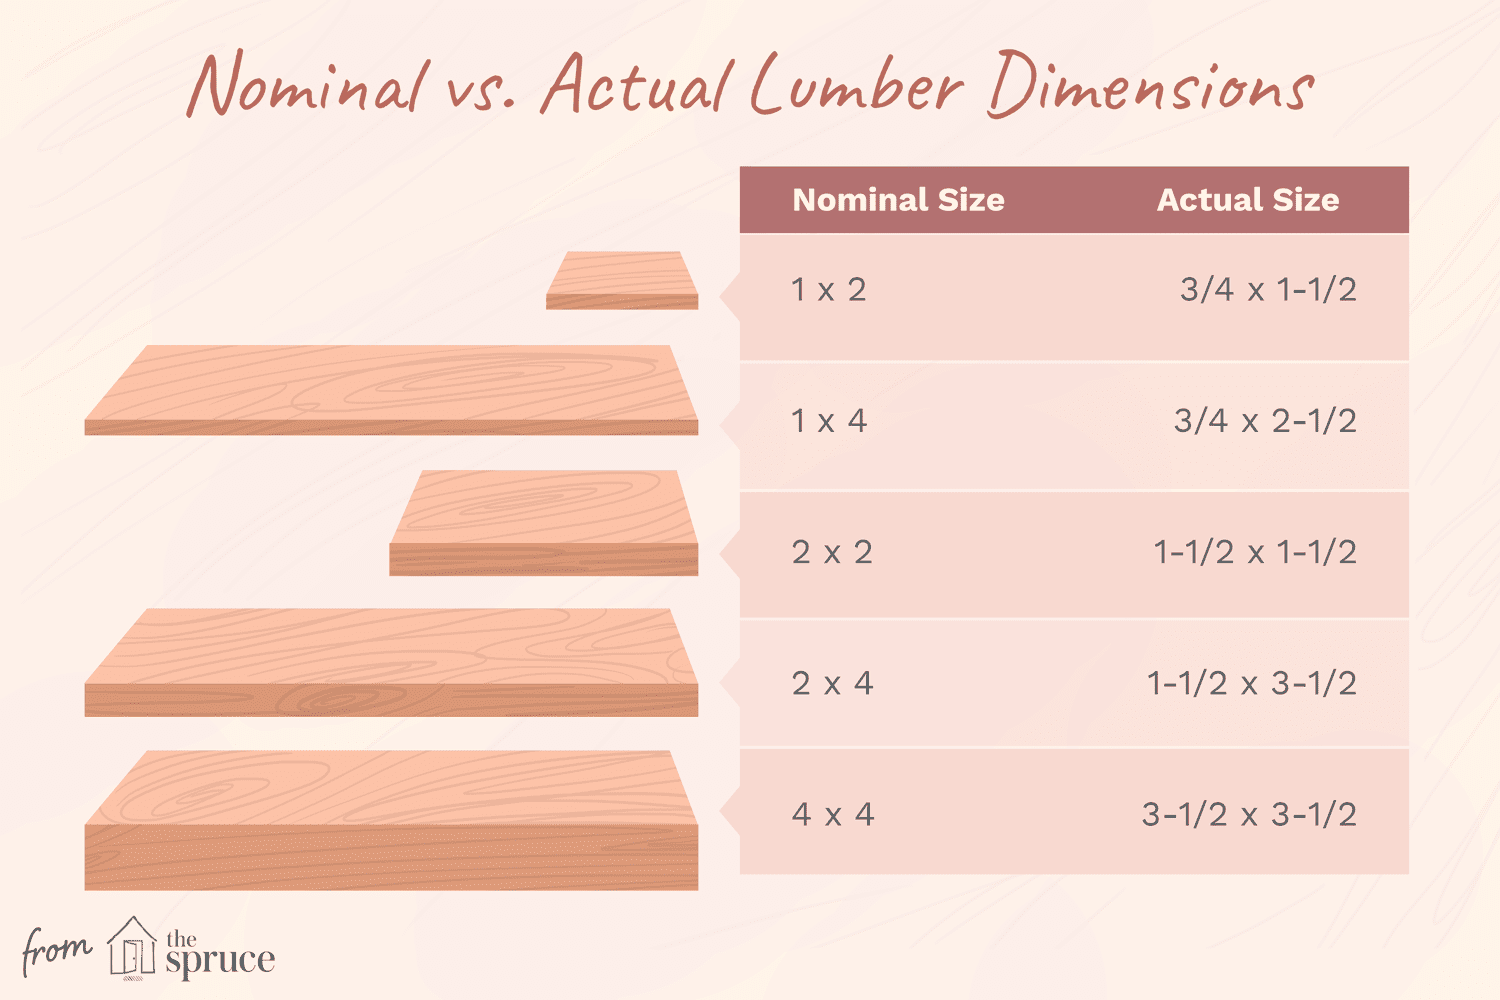 Nominal vs. Actual Lumber Dimensions